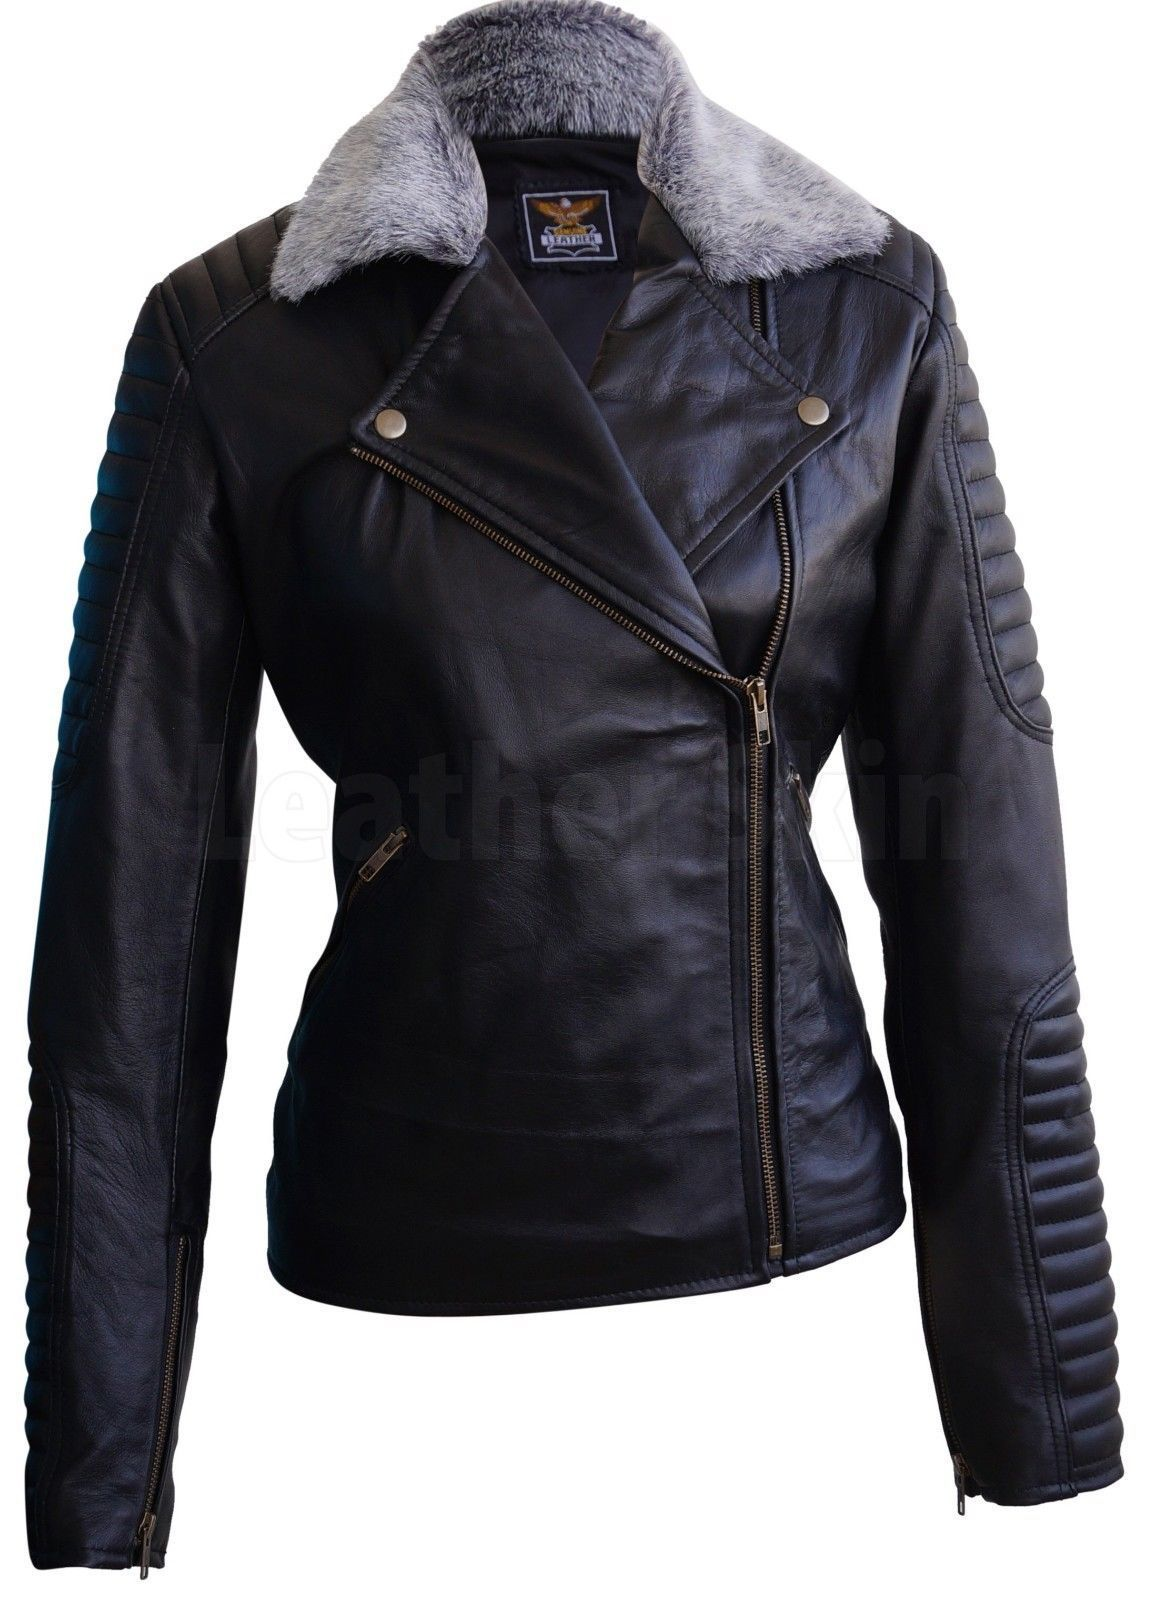 Pin By Lion Emporio On Fashion Clothing Womens Black Leather Jacket Leather Jackets Women Genuine Leather Jackets [ 1600 x 1166 Pixel ]